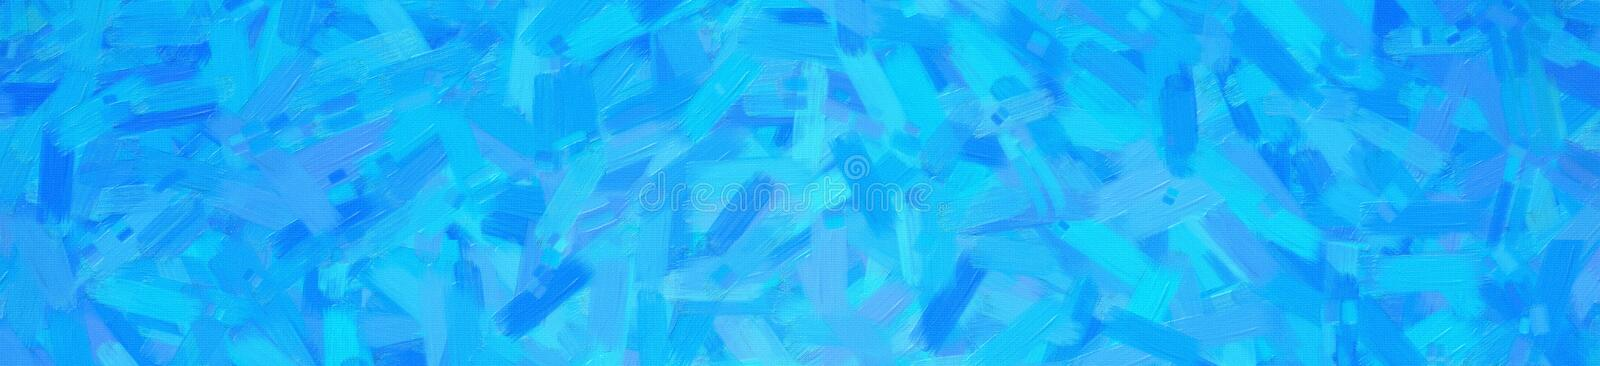 Abstract illustration of dodger blue Abstract Oil Painting banner background, digitally generated. Abstract illustration of dodger blue Abstract Oil Painting royalty free stock images